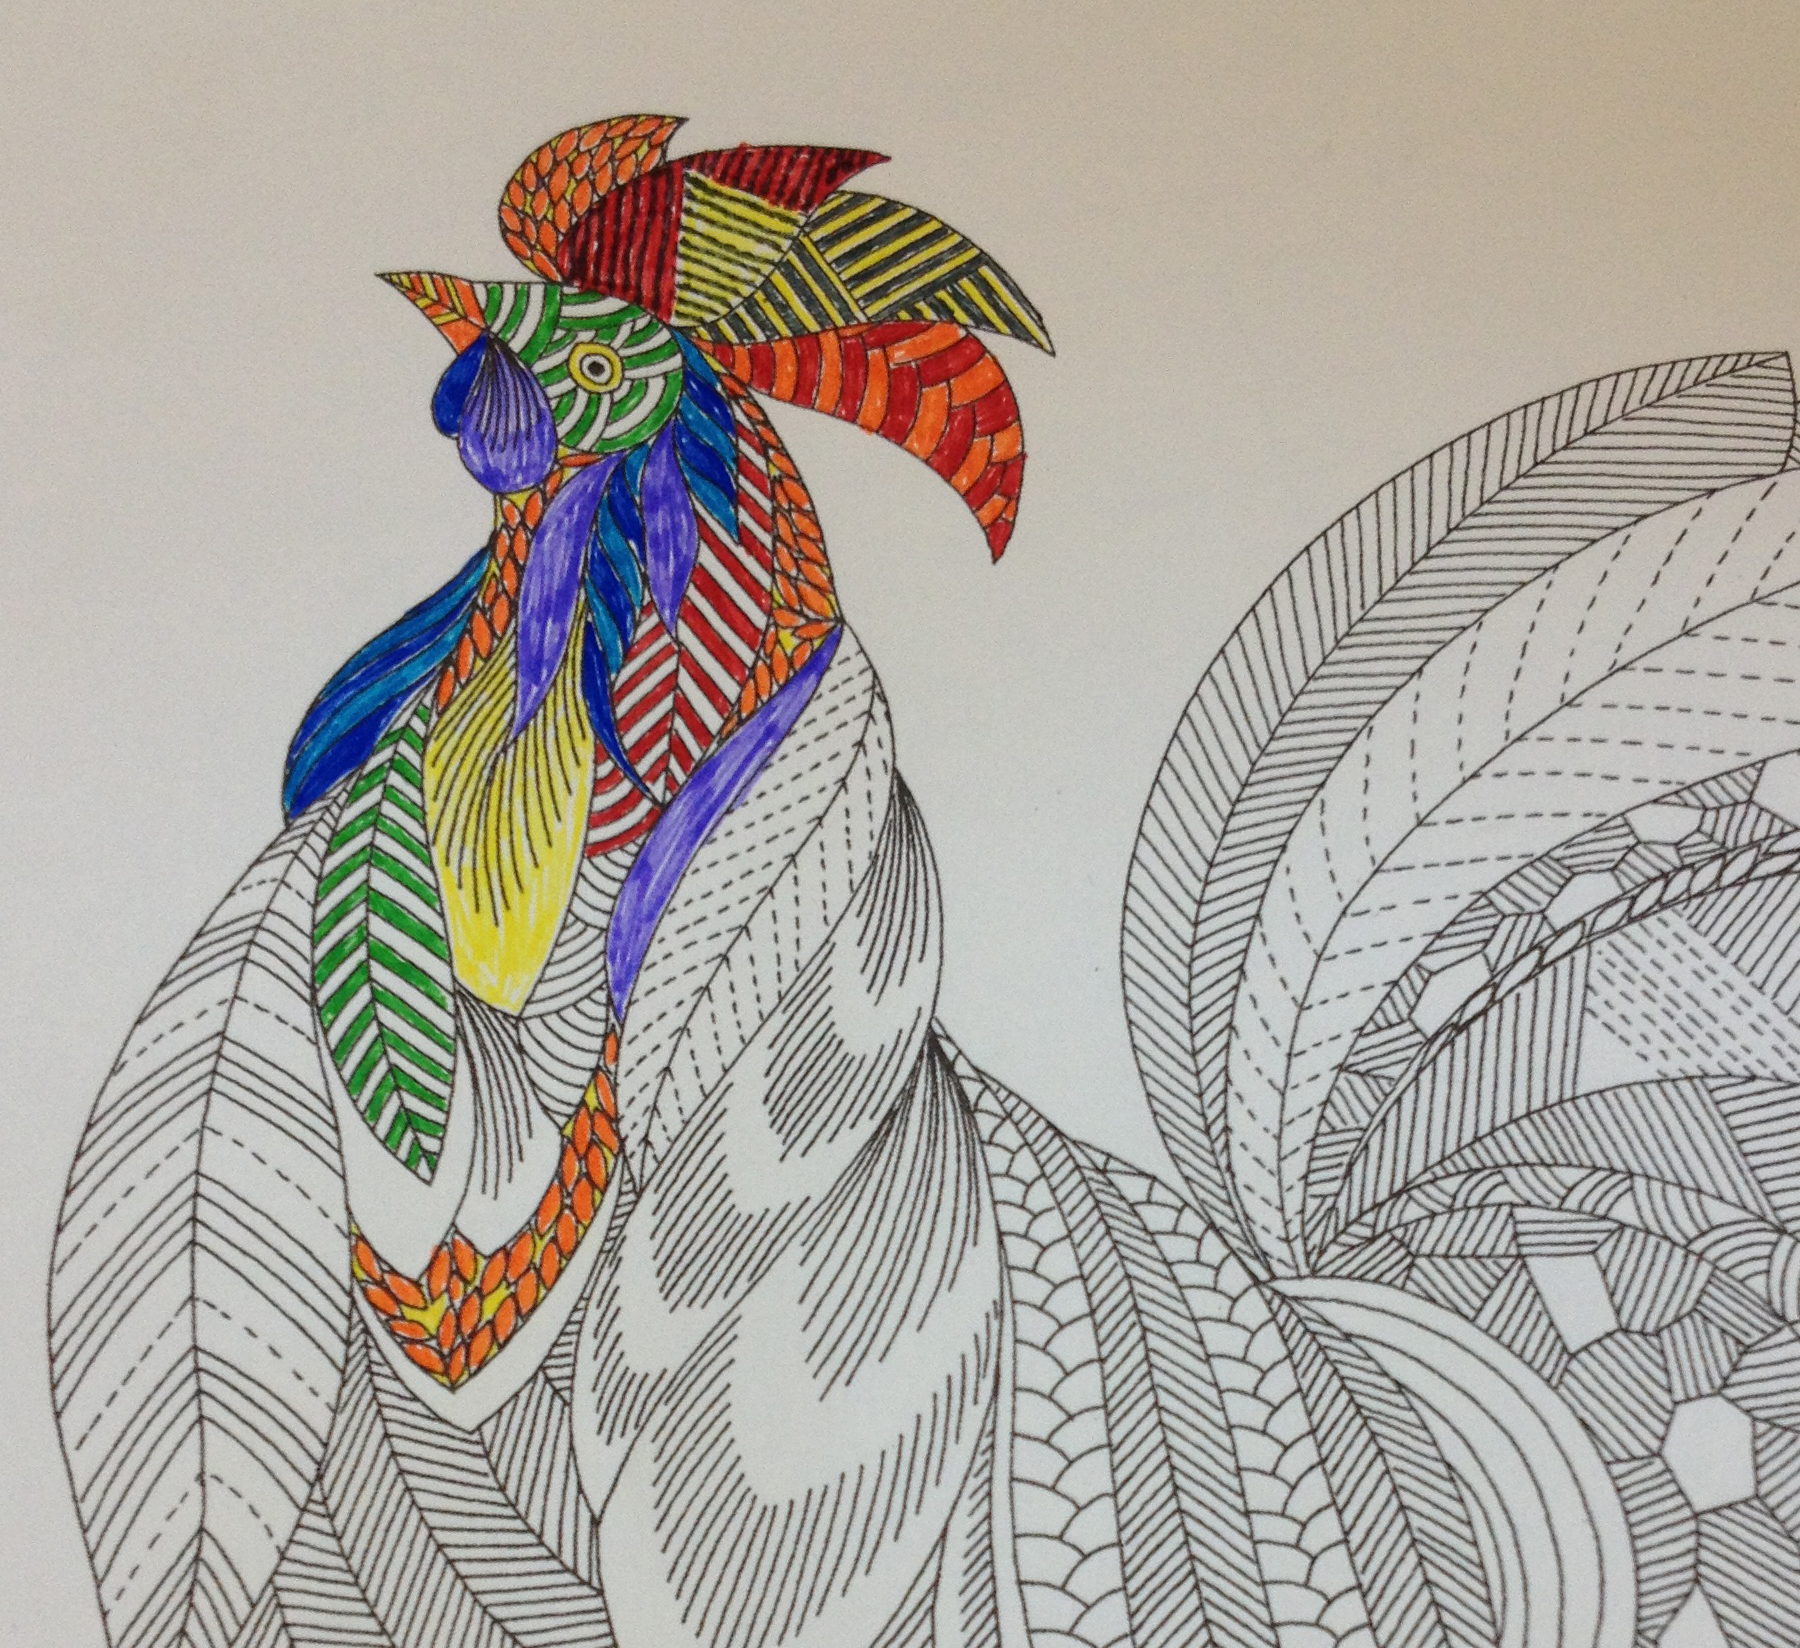 Animal kingdom coloring book gorilla - Colouring Makes A Comeback